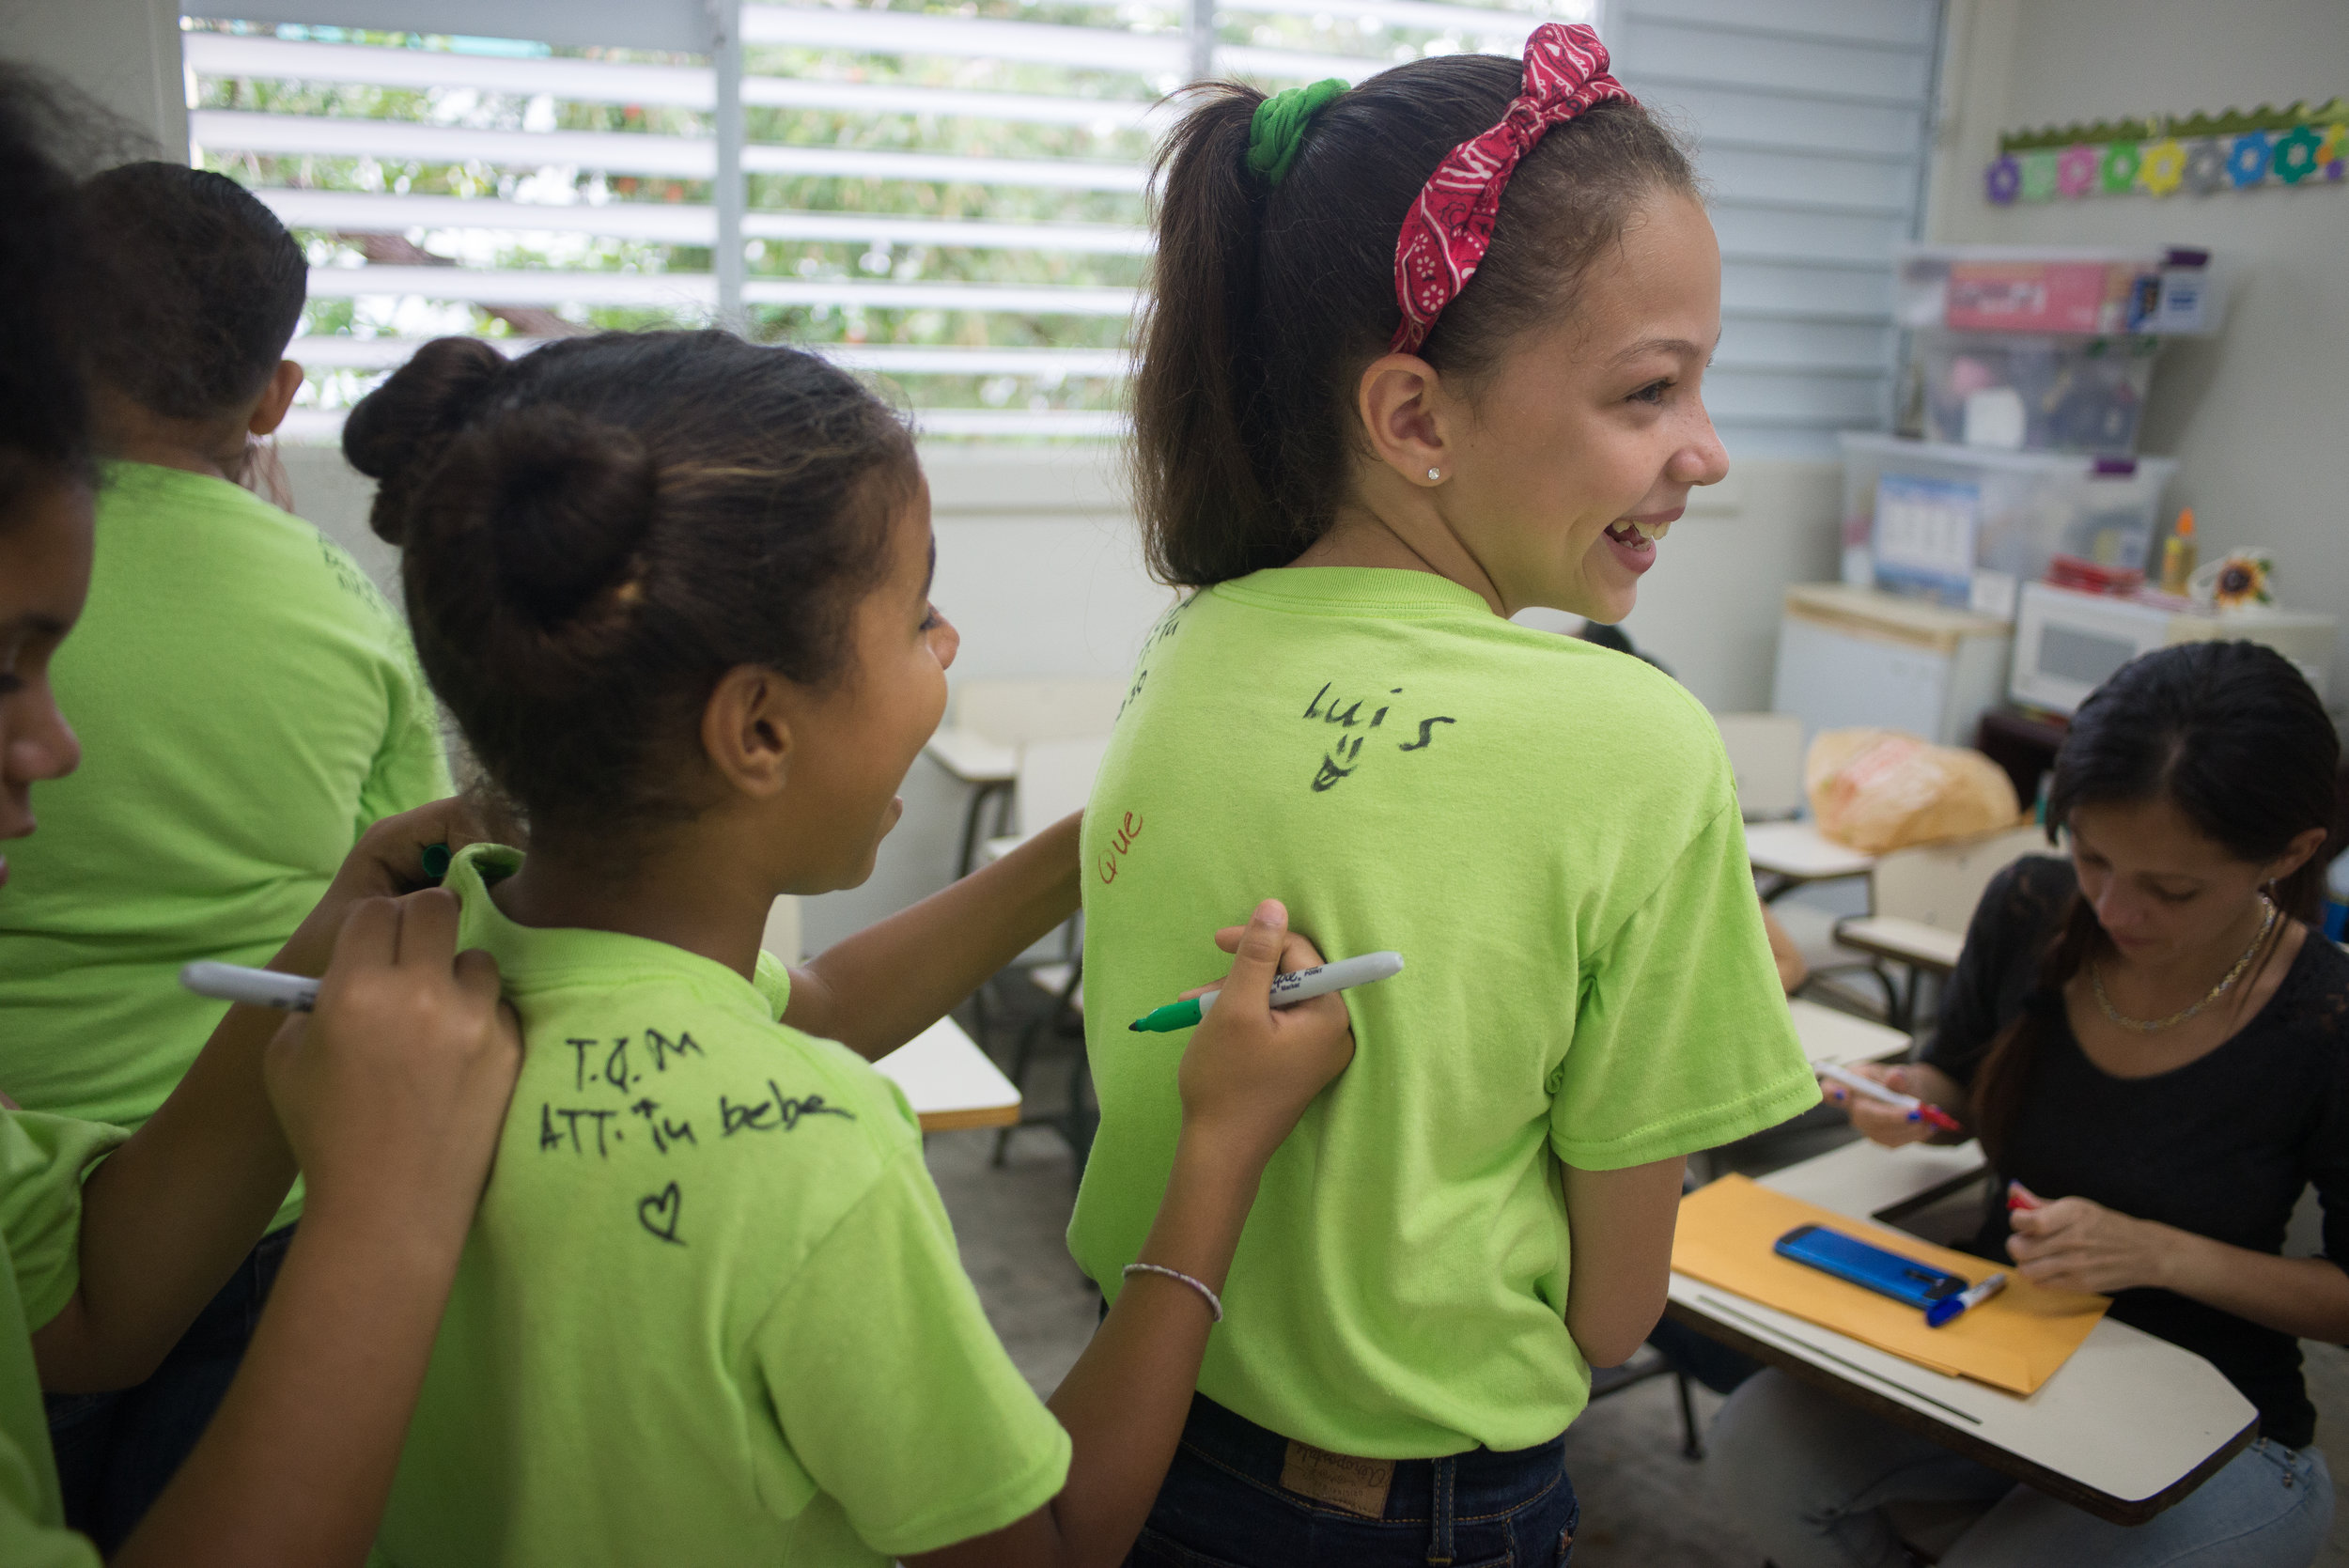 6/6/18 – Bayamón, Puerto Rico – The Puerto Rican Department of Education is closing 283 schools, and moving multiple schools into the same building, citing the past year's drastic drop in enrollment as one of the primary reasons to lower the amount of schools, and instead increase the amount of students in each school. Students of special education schools are one of the groups to be most negatively affected by these closings, as the new schools may not offer the resources the students need and have access to at their current schools. La Escuela Aurelio Perez Martinez in the town of Bayamón is among the schools that will be closed. Sfudents in 4th and 5th grade sign each others' shirts on the last day of the school year. (Sofie Hecht Photography)